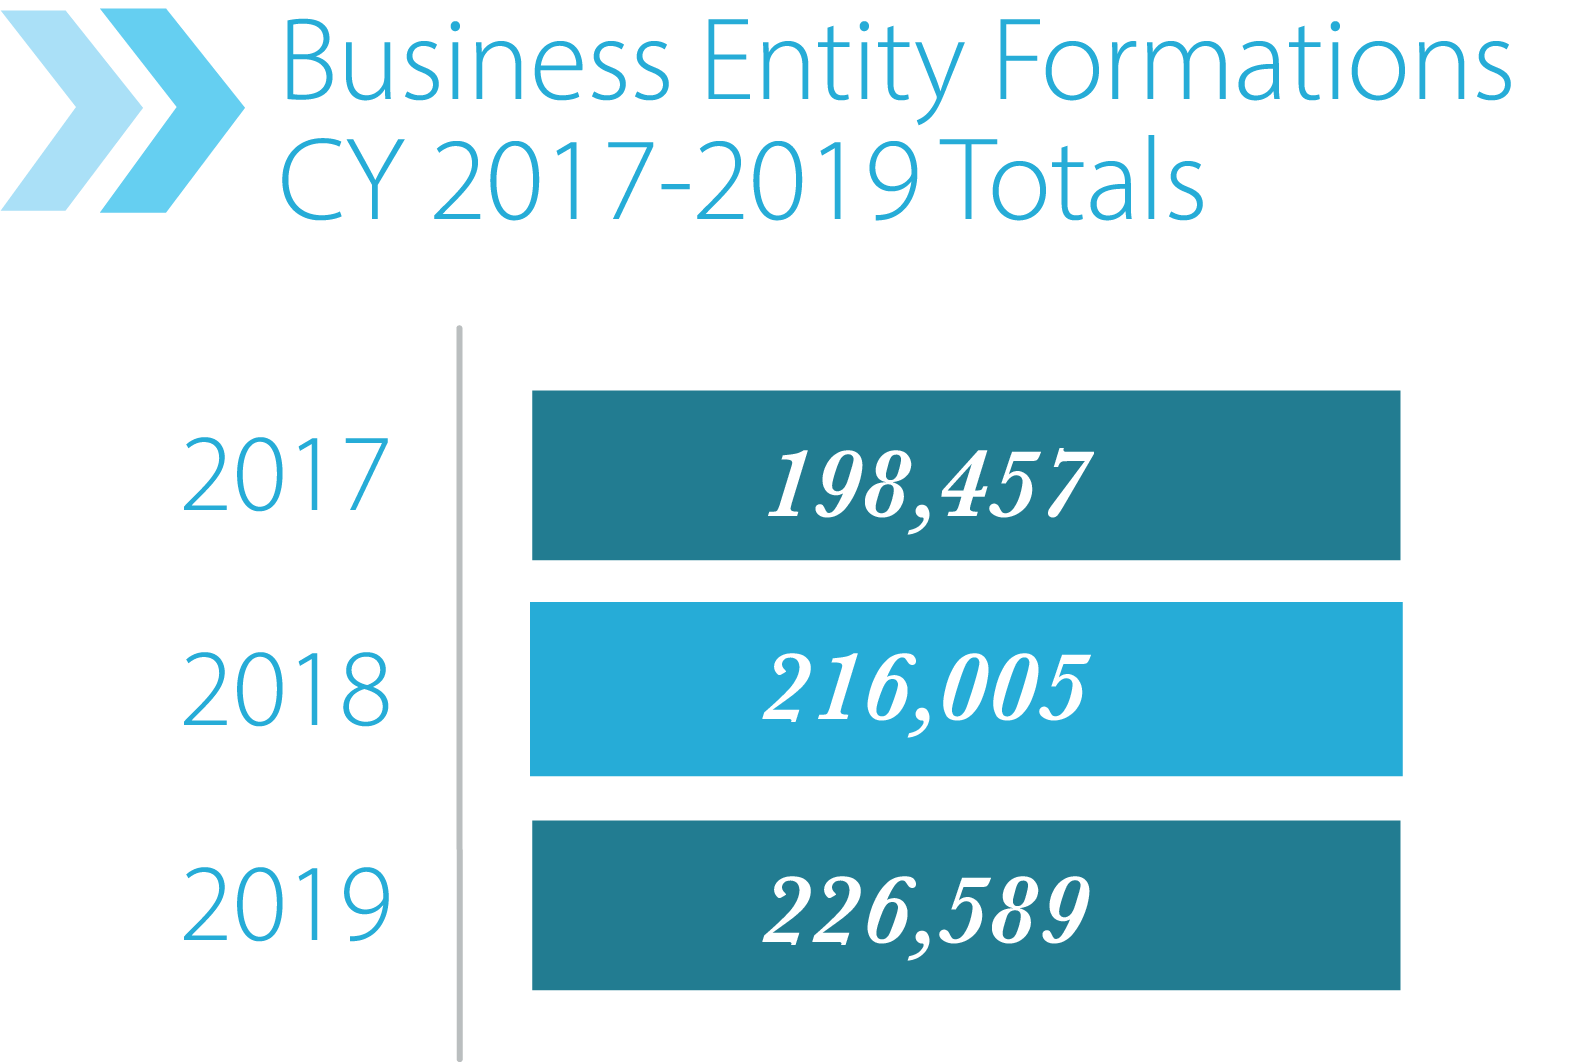 Bar Graph of Business Entity Formations CY 2017-2019 Totals